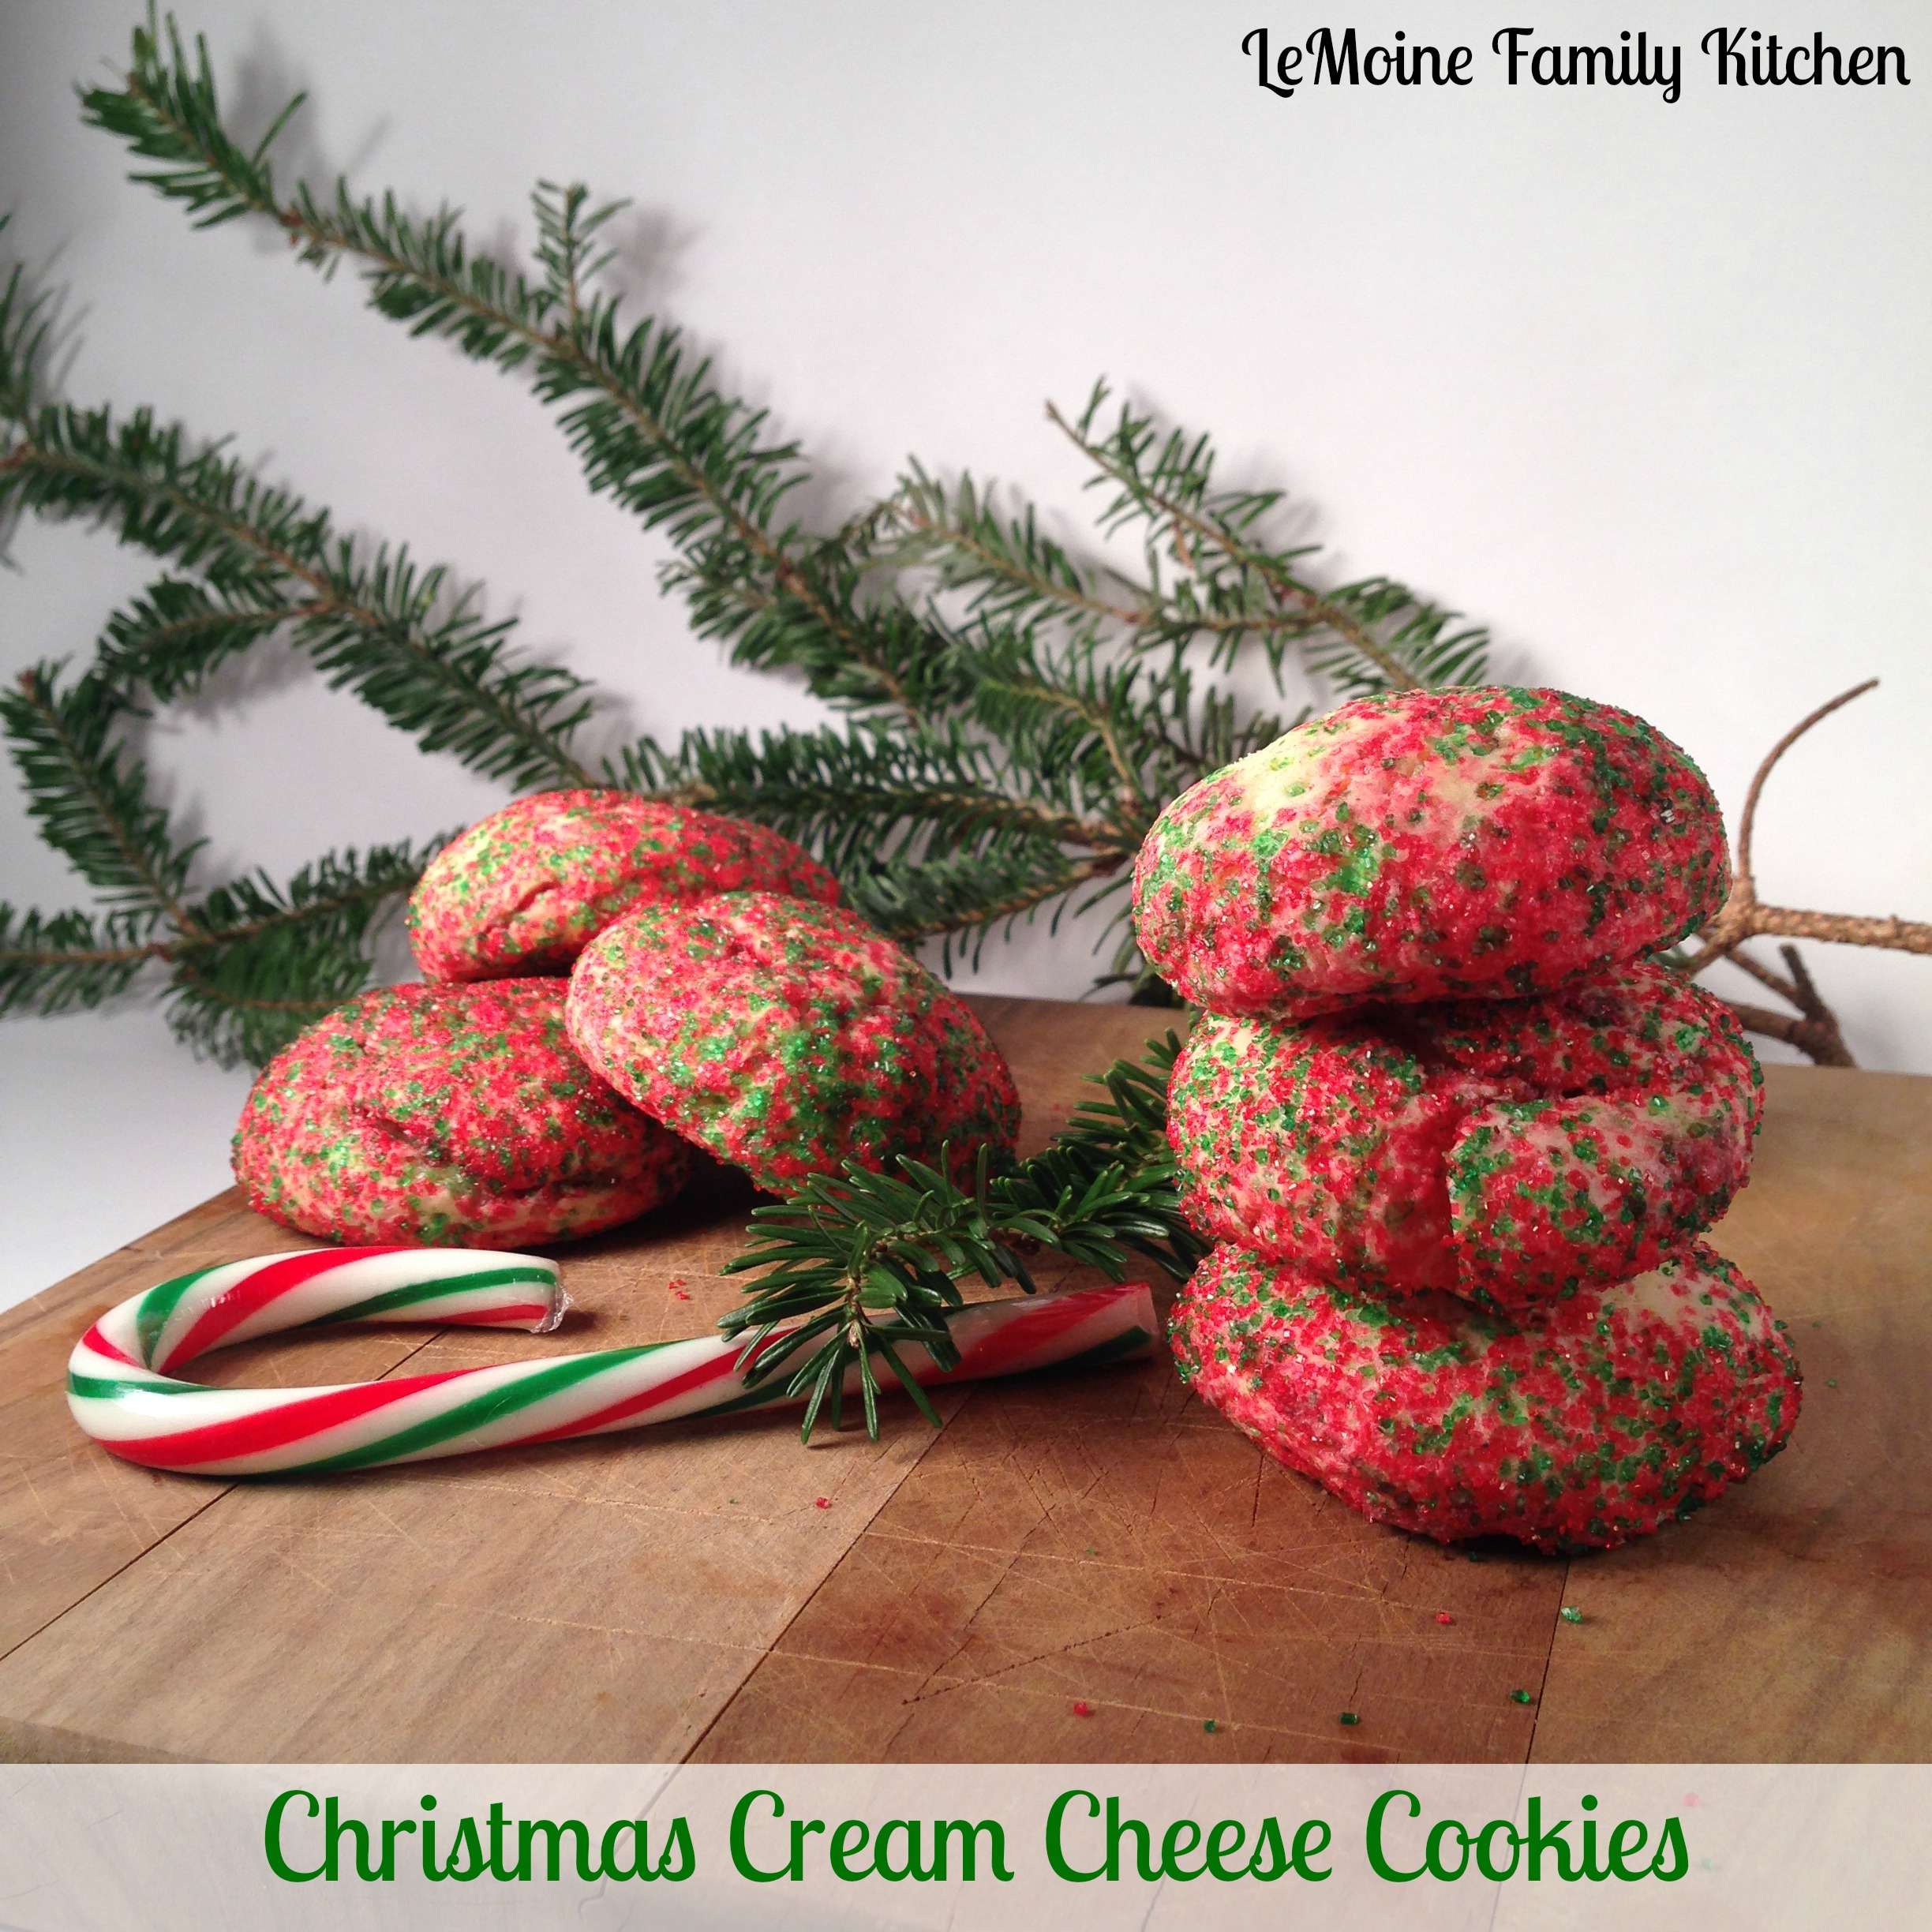 Christmas Cream Cheese Cookies - LeMoine Family Kitchen